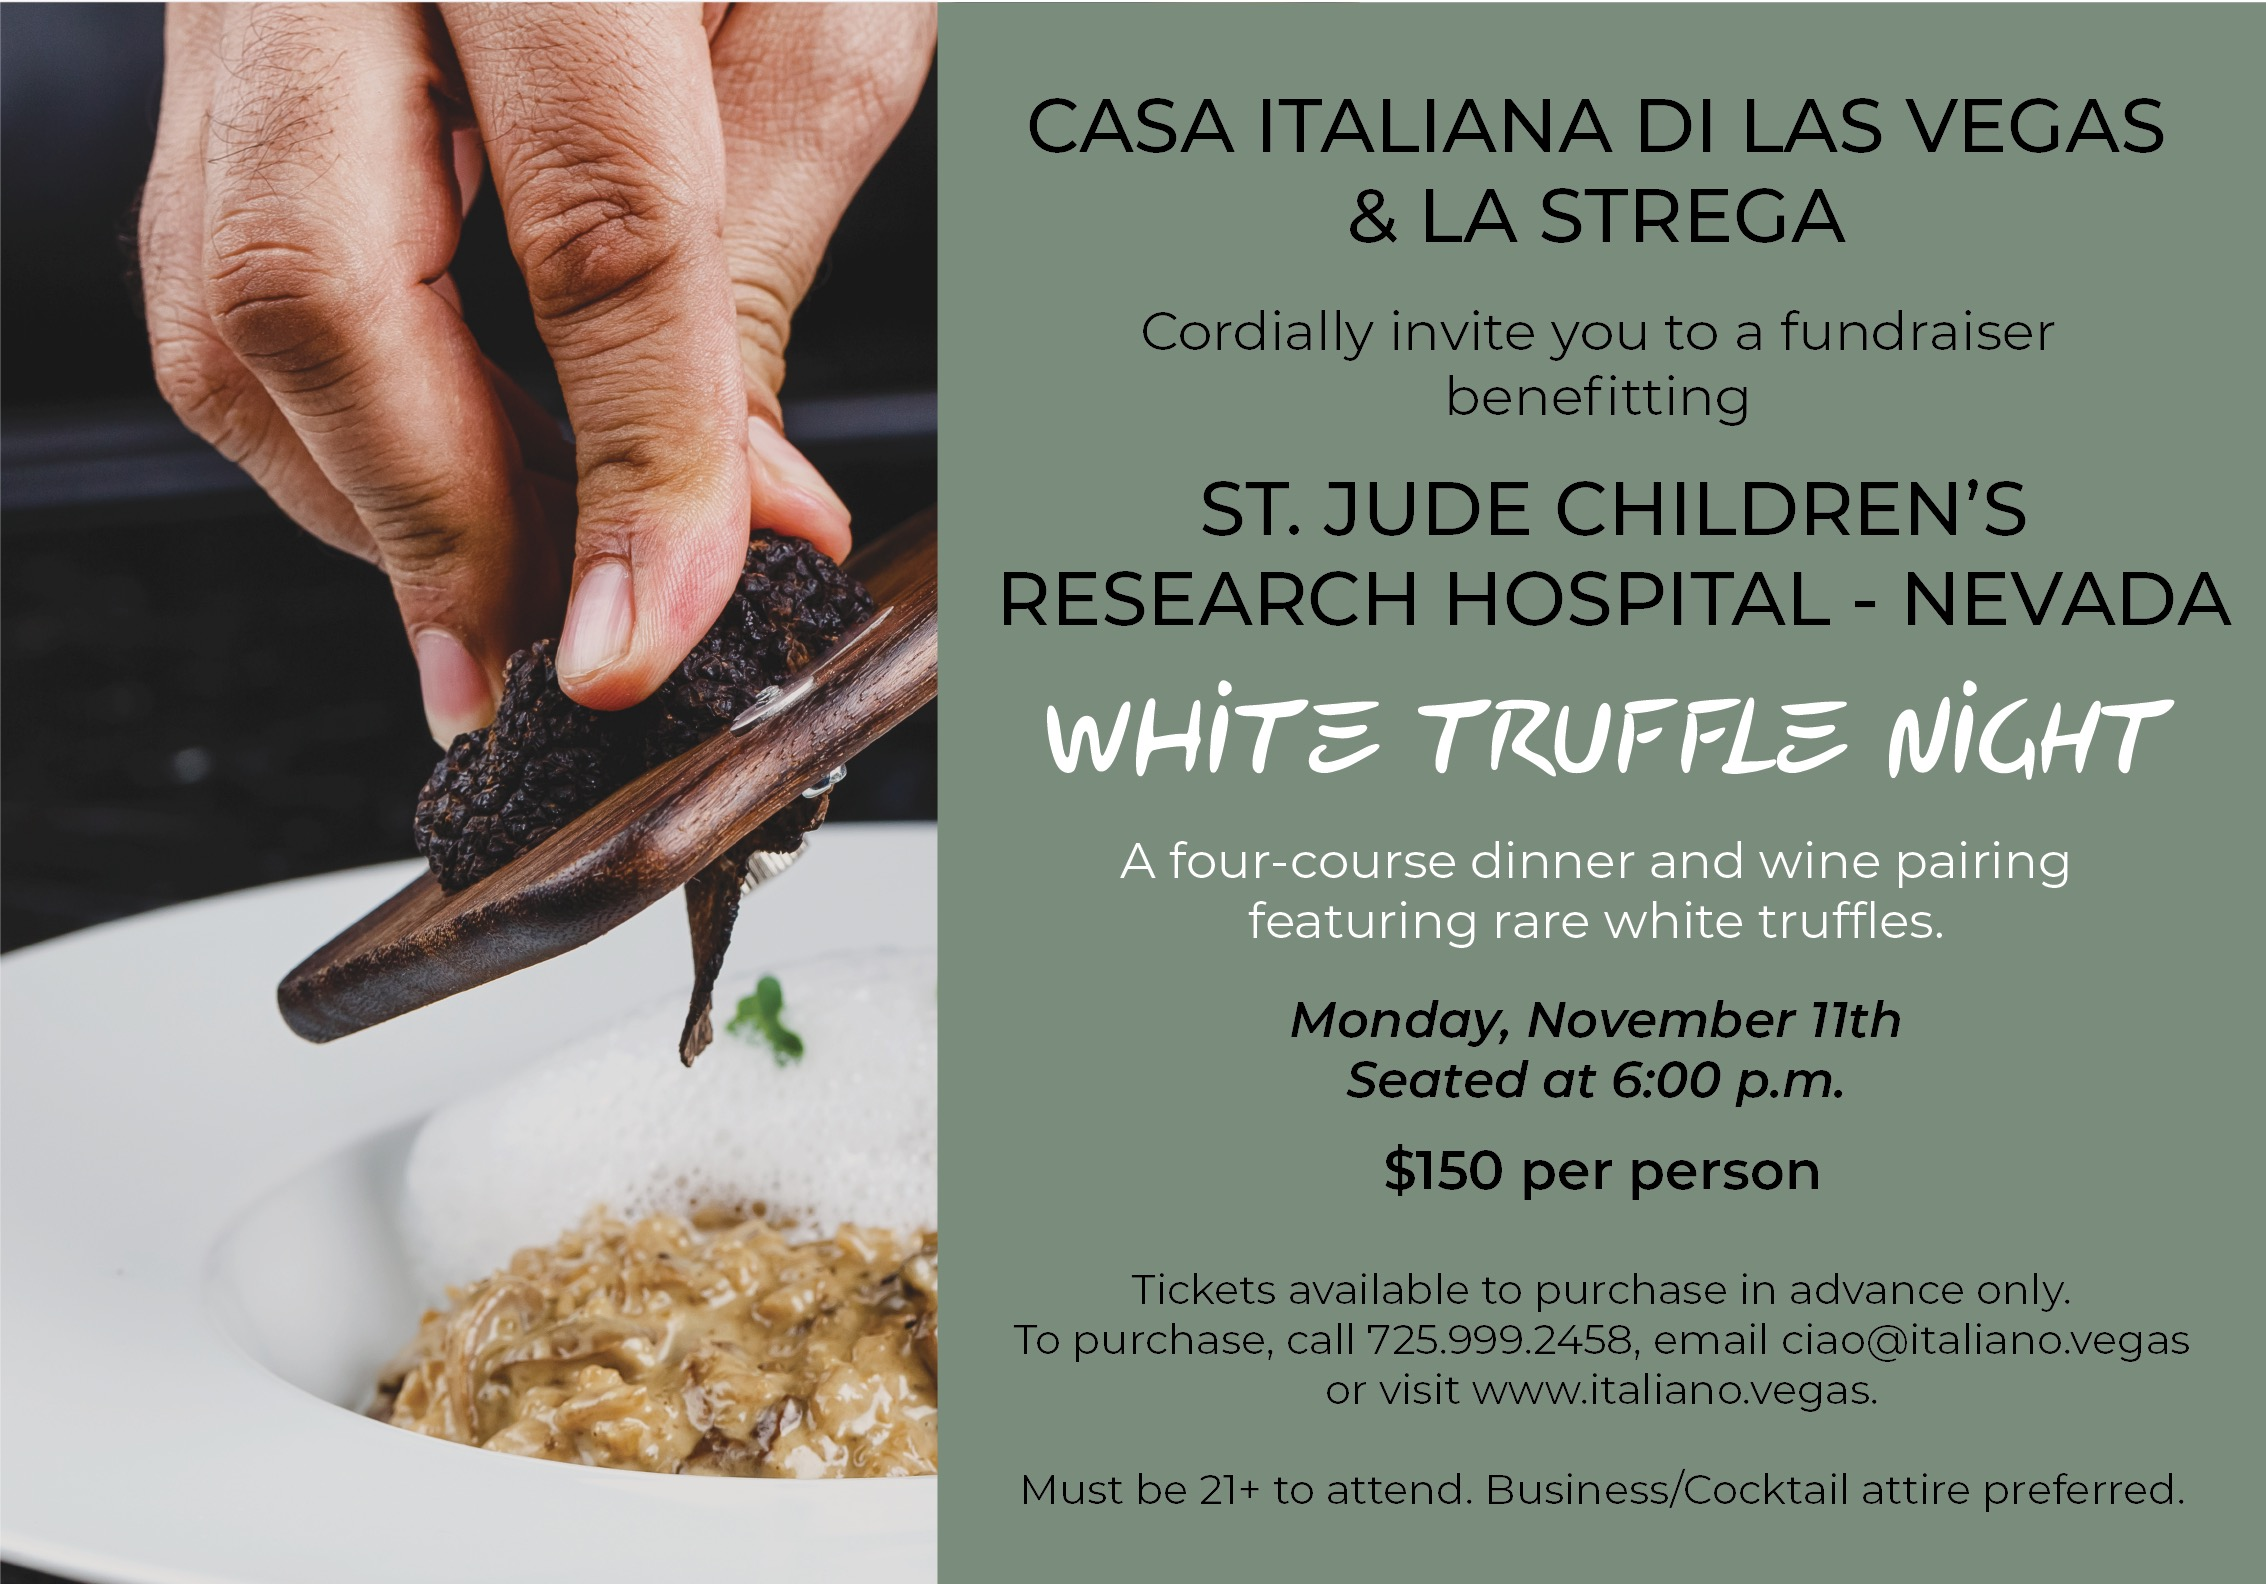 WHITE TRUFFLE NIGHT FUNDRAISER